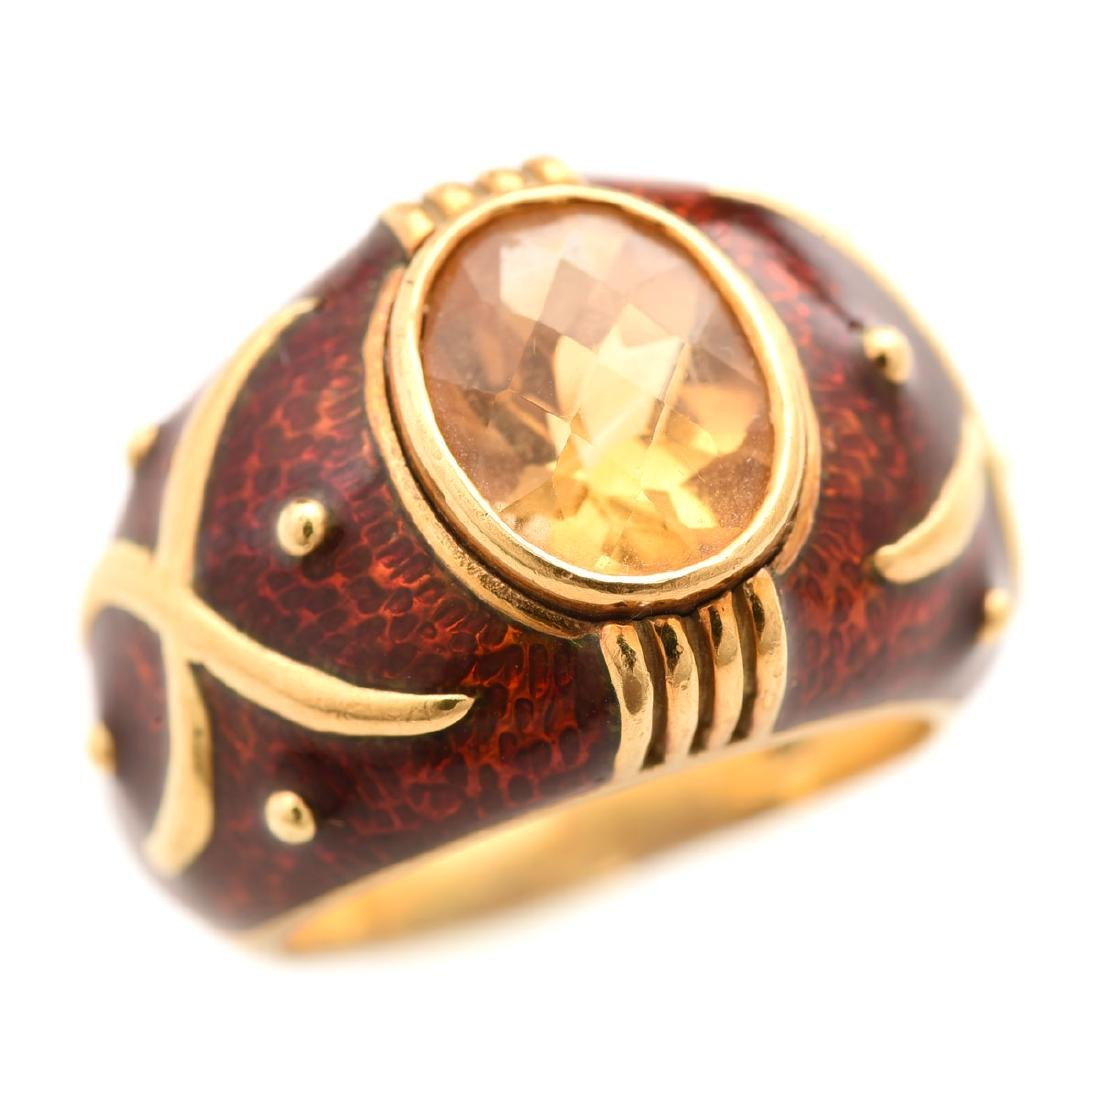 Citrine, Guilloche Enamel, 18k Yellow Gold Ring.